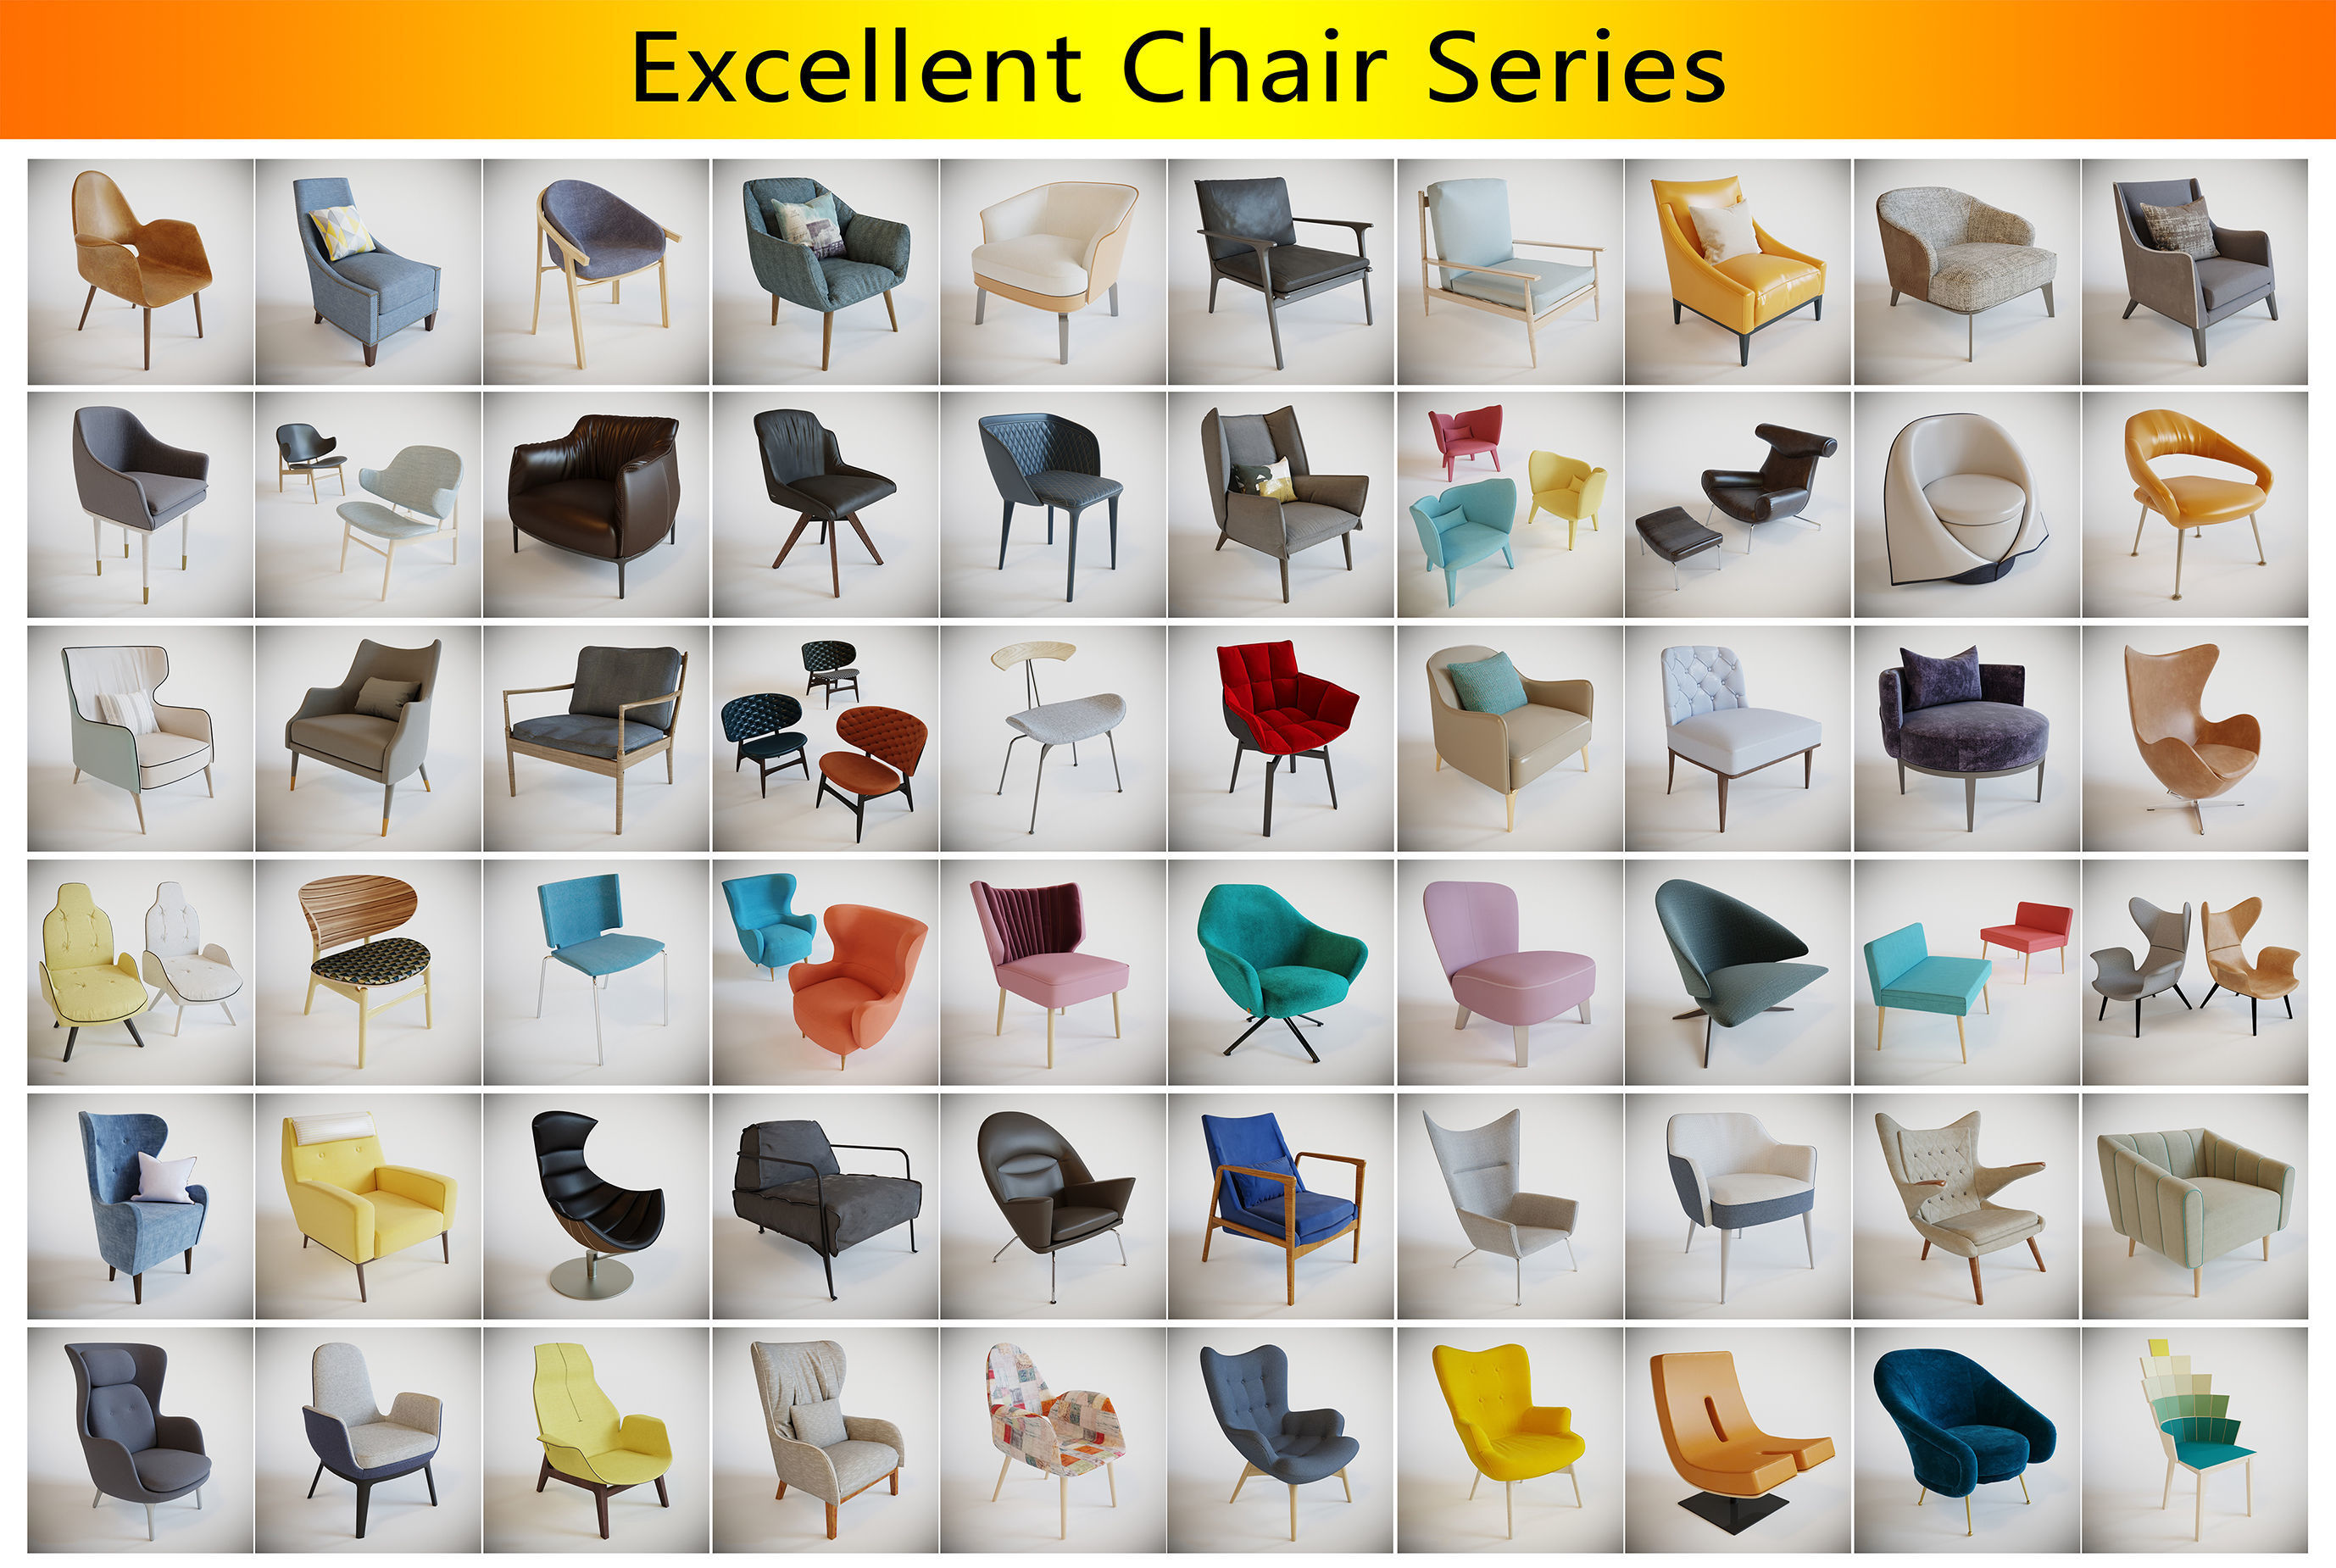 Excellent Chair Series